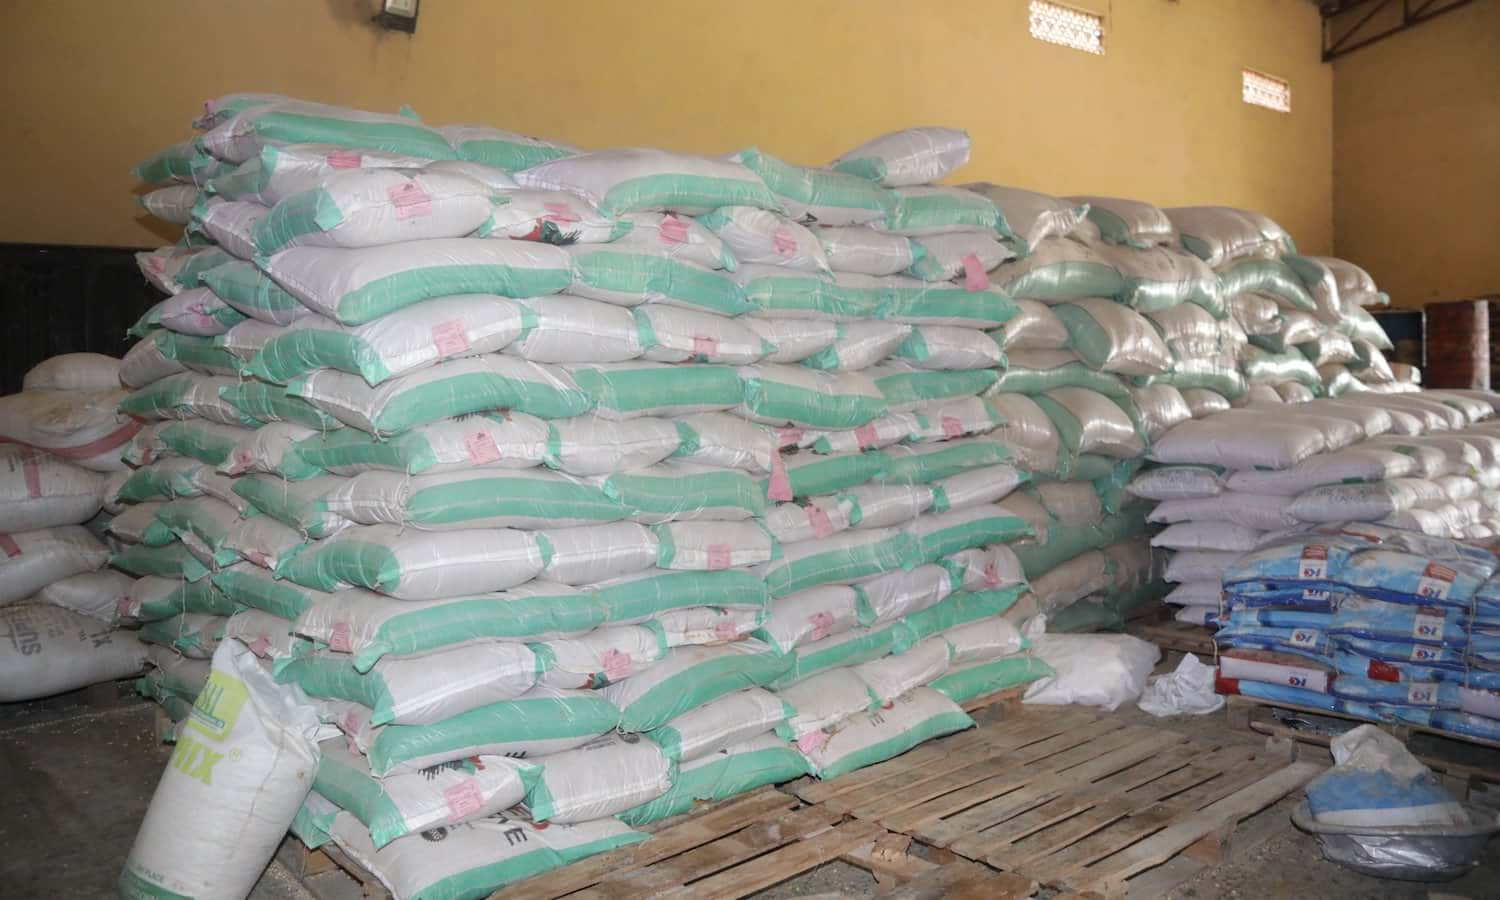 Seed harmonization rules have greatly benefitted West African nations' ability to speedily import and export large amounts of important seeds.